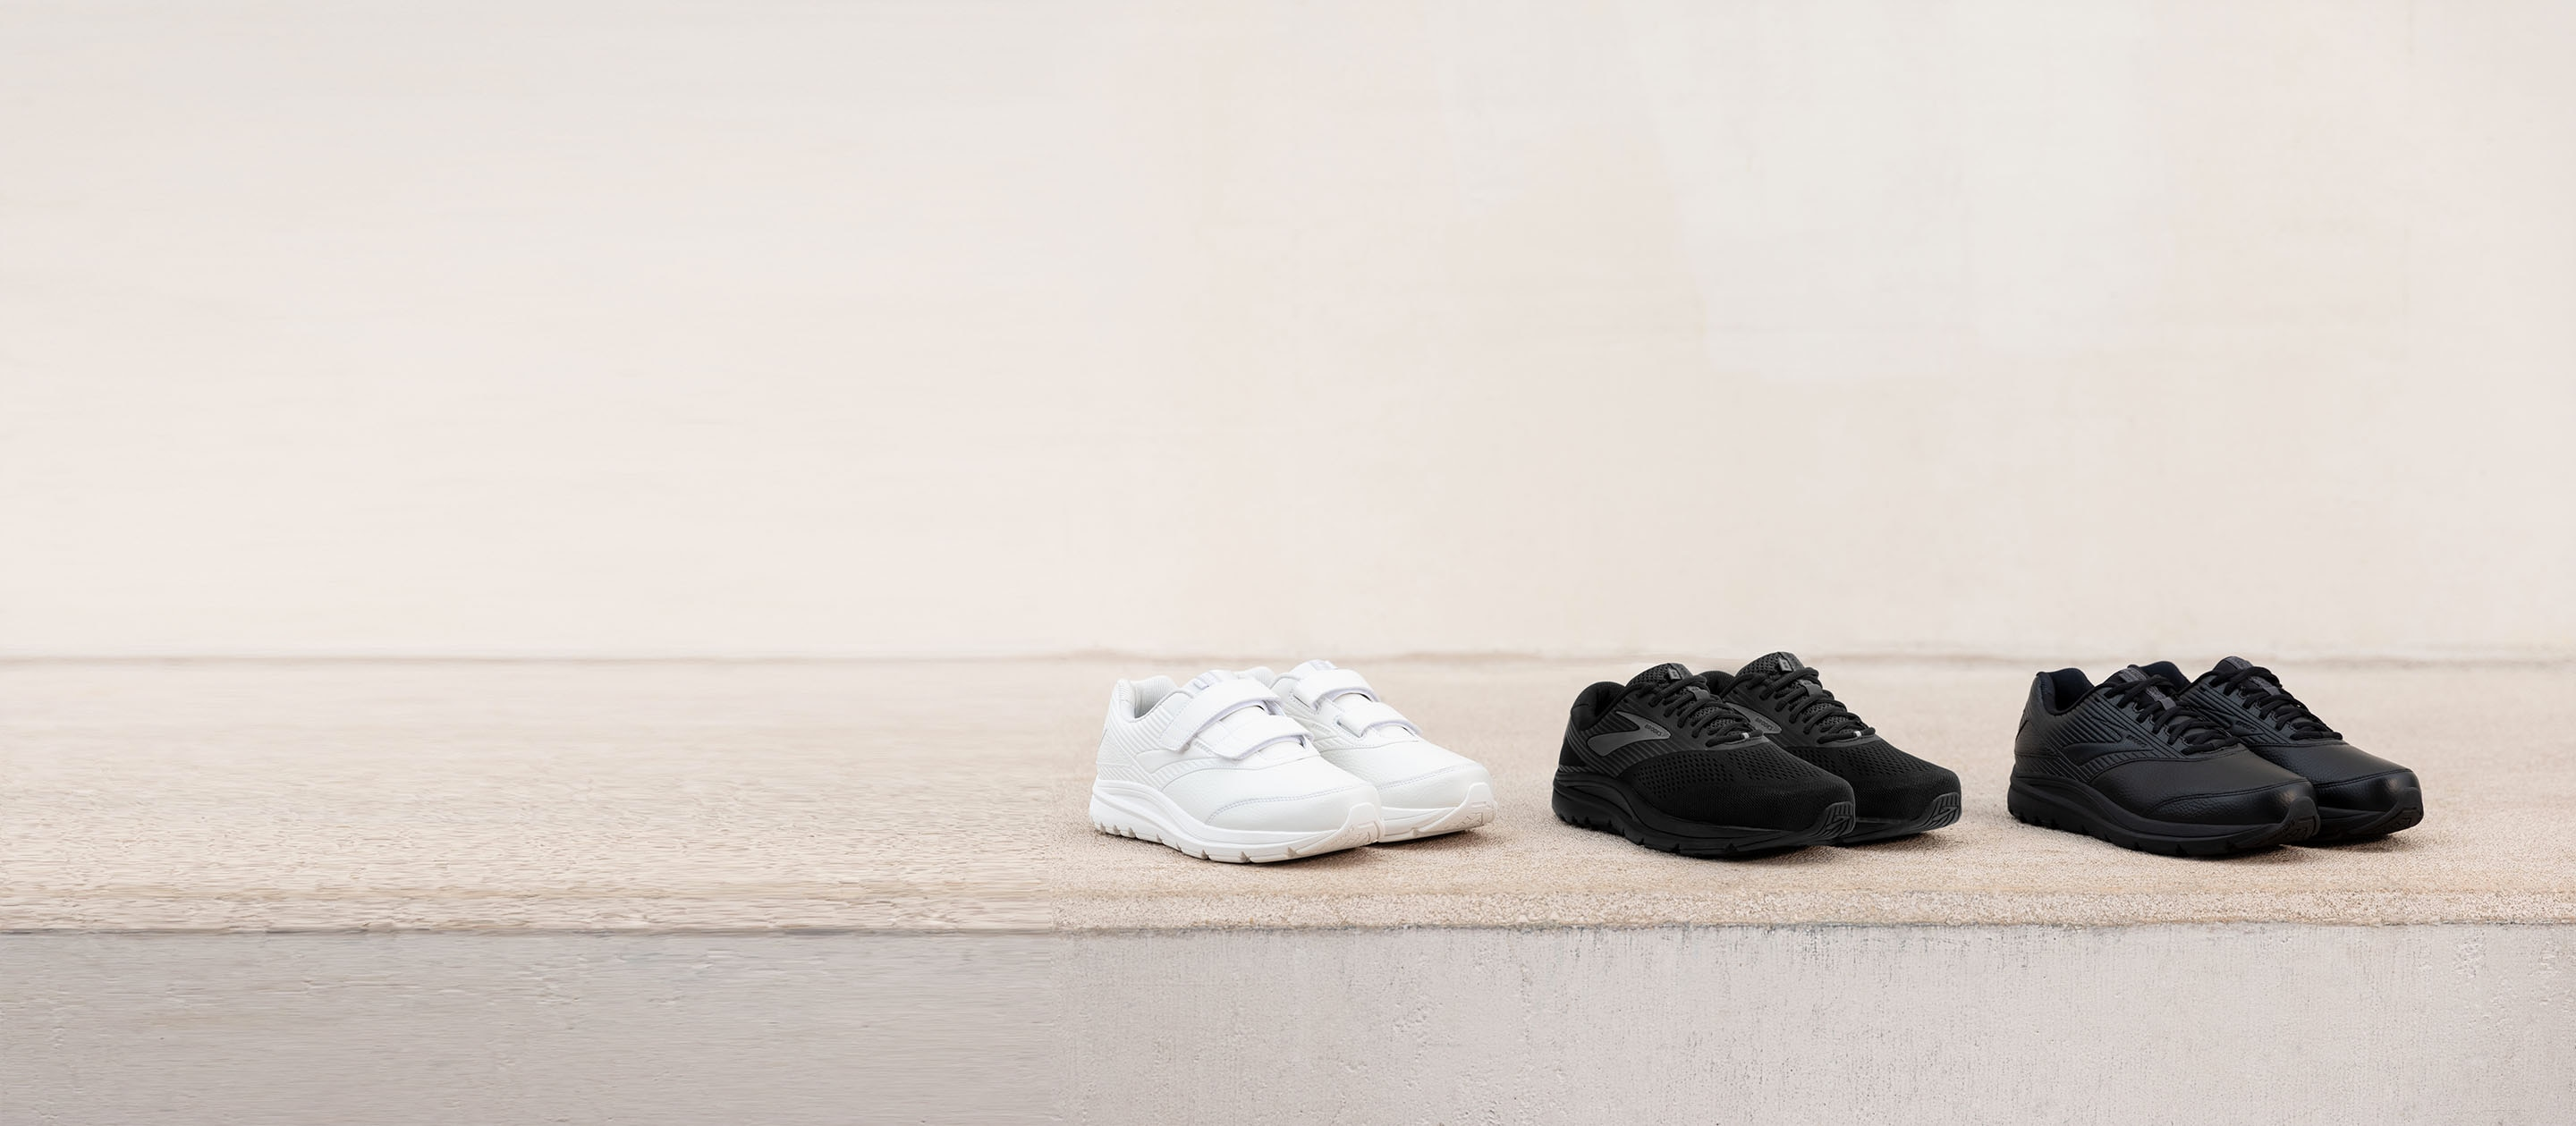 The Addiction Walker 2 V-Strap in white, the Addiction Walker Suede in black and the Addiction Walker 2 in black lined up together